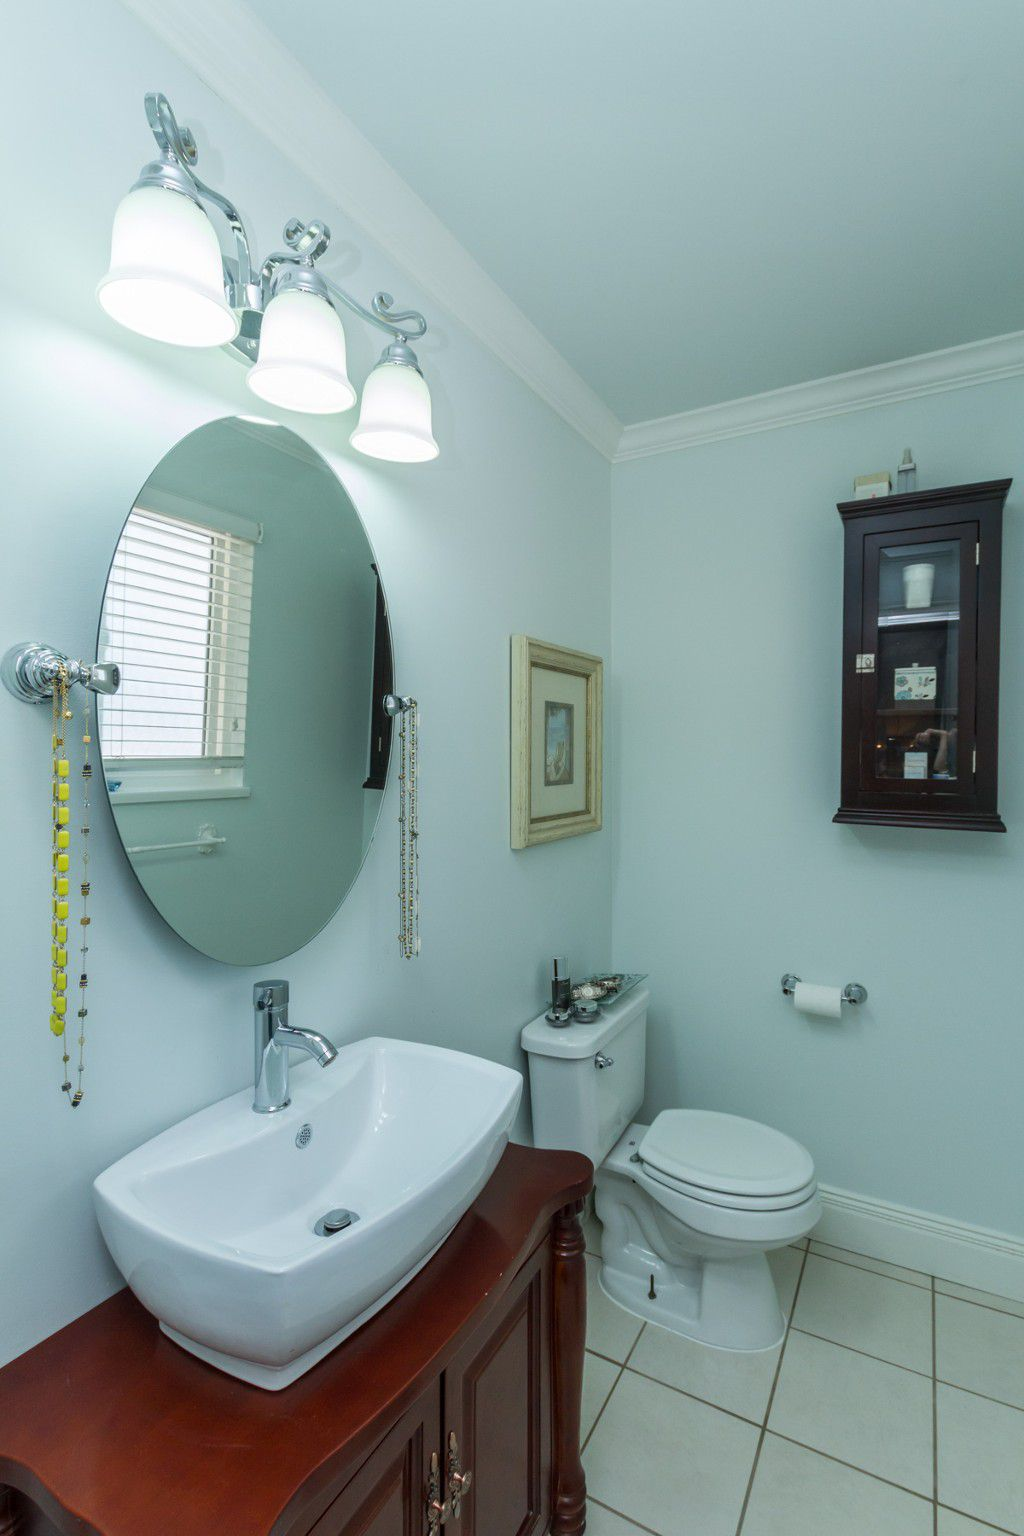 Photo 16: Photos: 1985 PETERSON Avenue in Coquitlam: Cape Horn House for sale : MLS®# V1067810